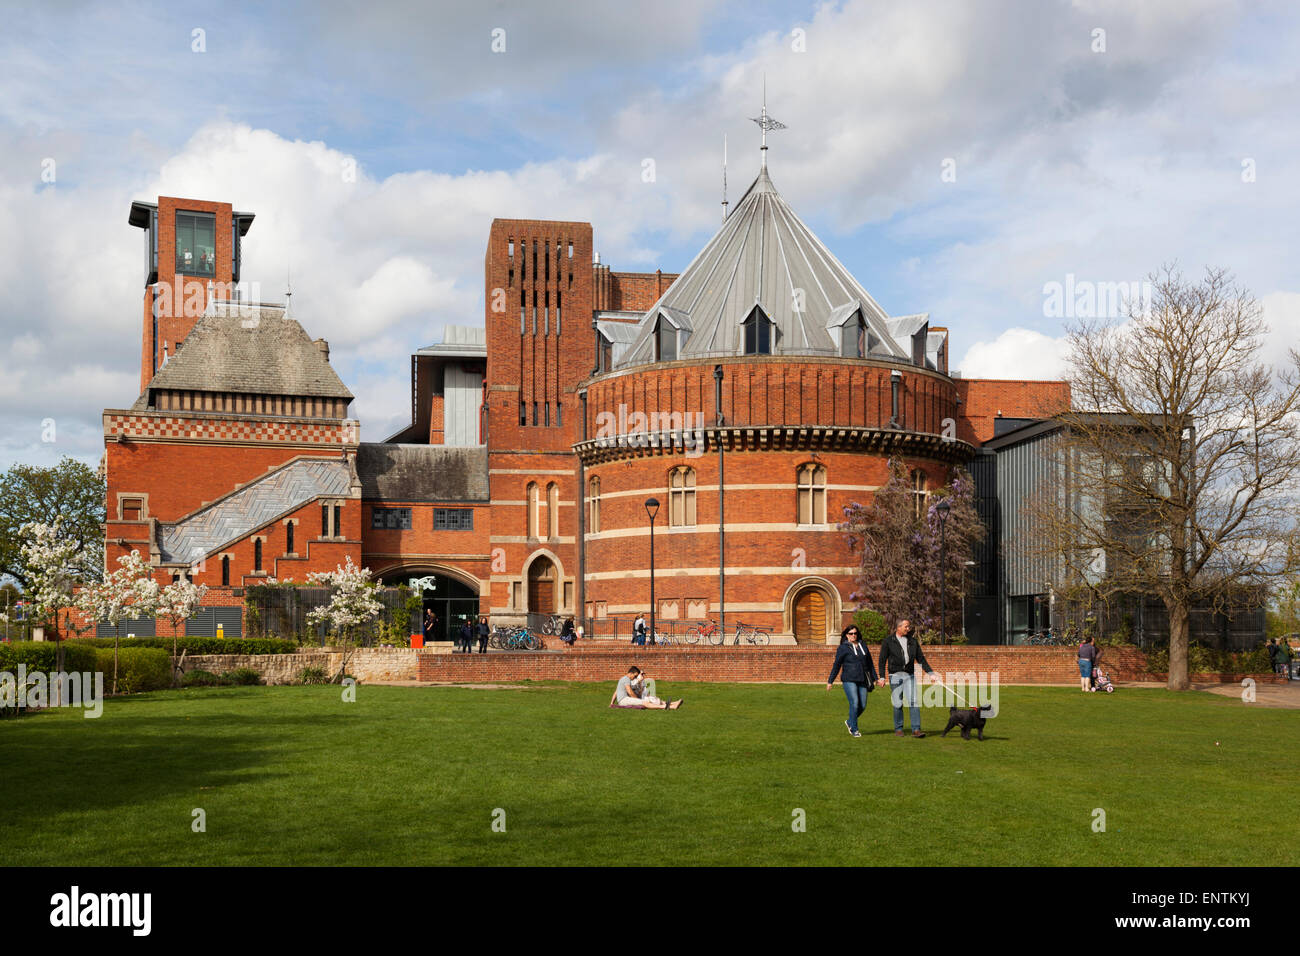 The Swan Theatre and the Royal Shakespeare Theatre, Stratford-upon-Avon, Warwickshire, England, United Kingdom, - Stock Image